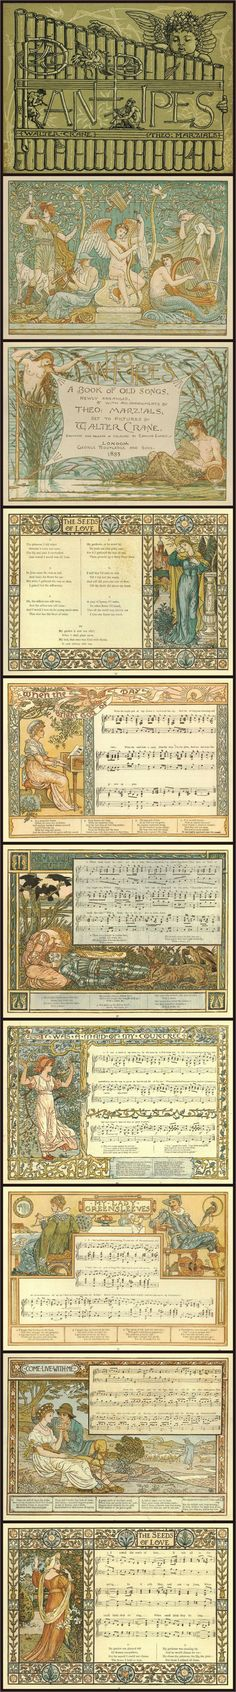 'Pan-pipes : a book of old songs'  newly arranged & with accompaniments by Theo. Marzials; set to pictures by Walter Crane; Published 1883.